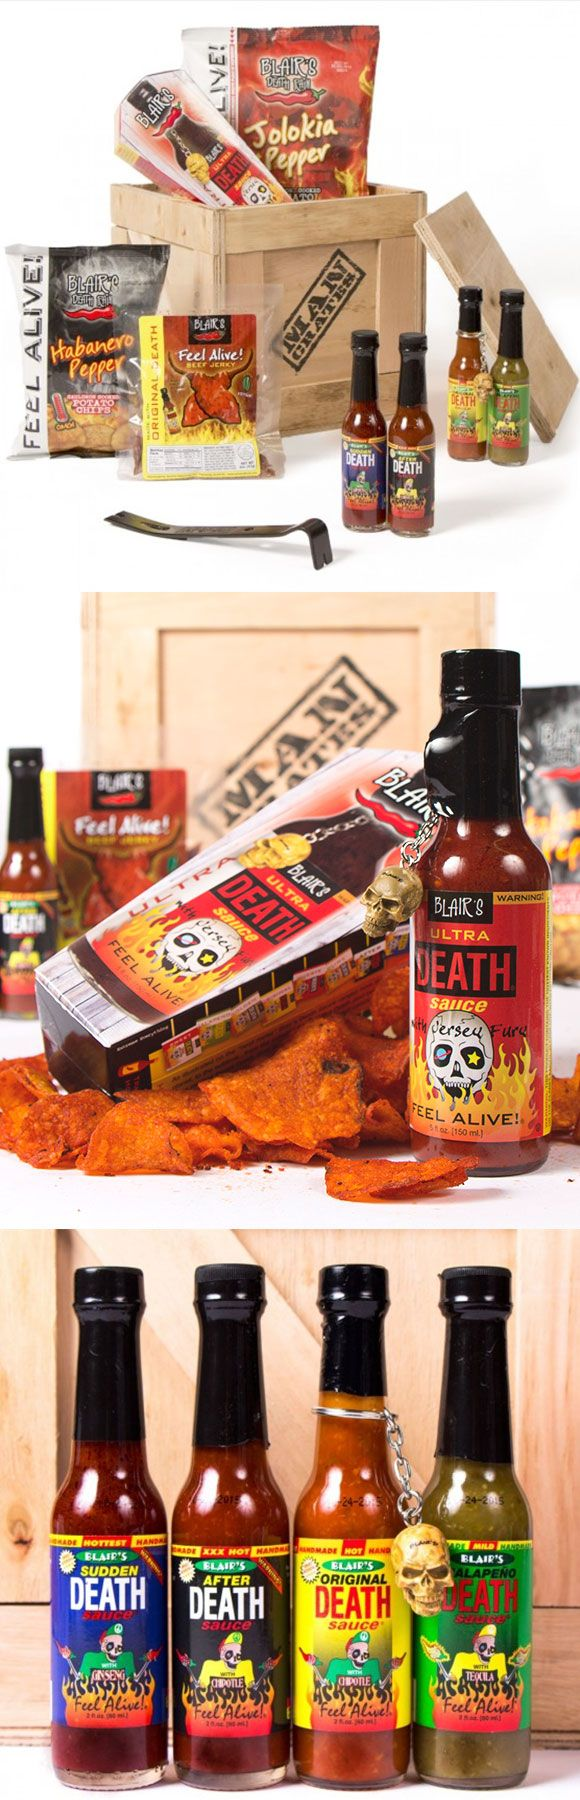 Saw these guys on the Today show! Spice things up this Valentine's with the Hot & Spicy Man Crate — watch your tough guy cry tears of joyous pain when tries the sauces. #ManCrates